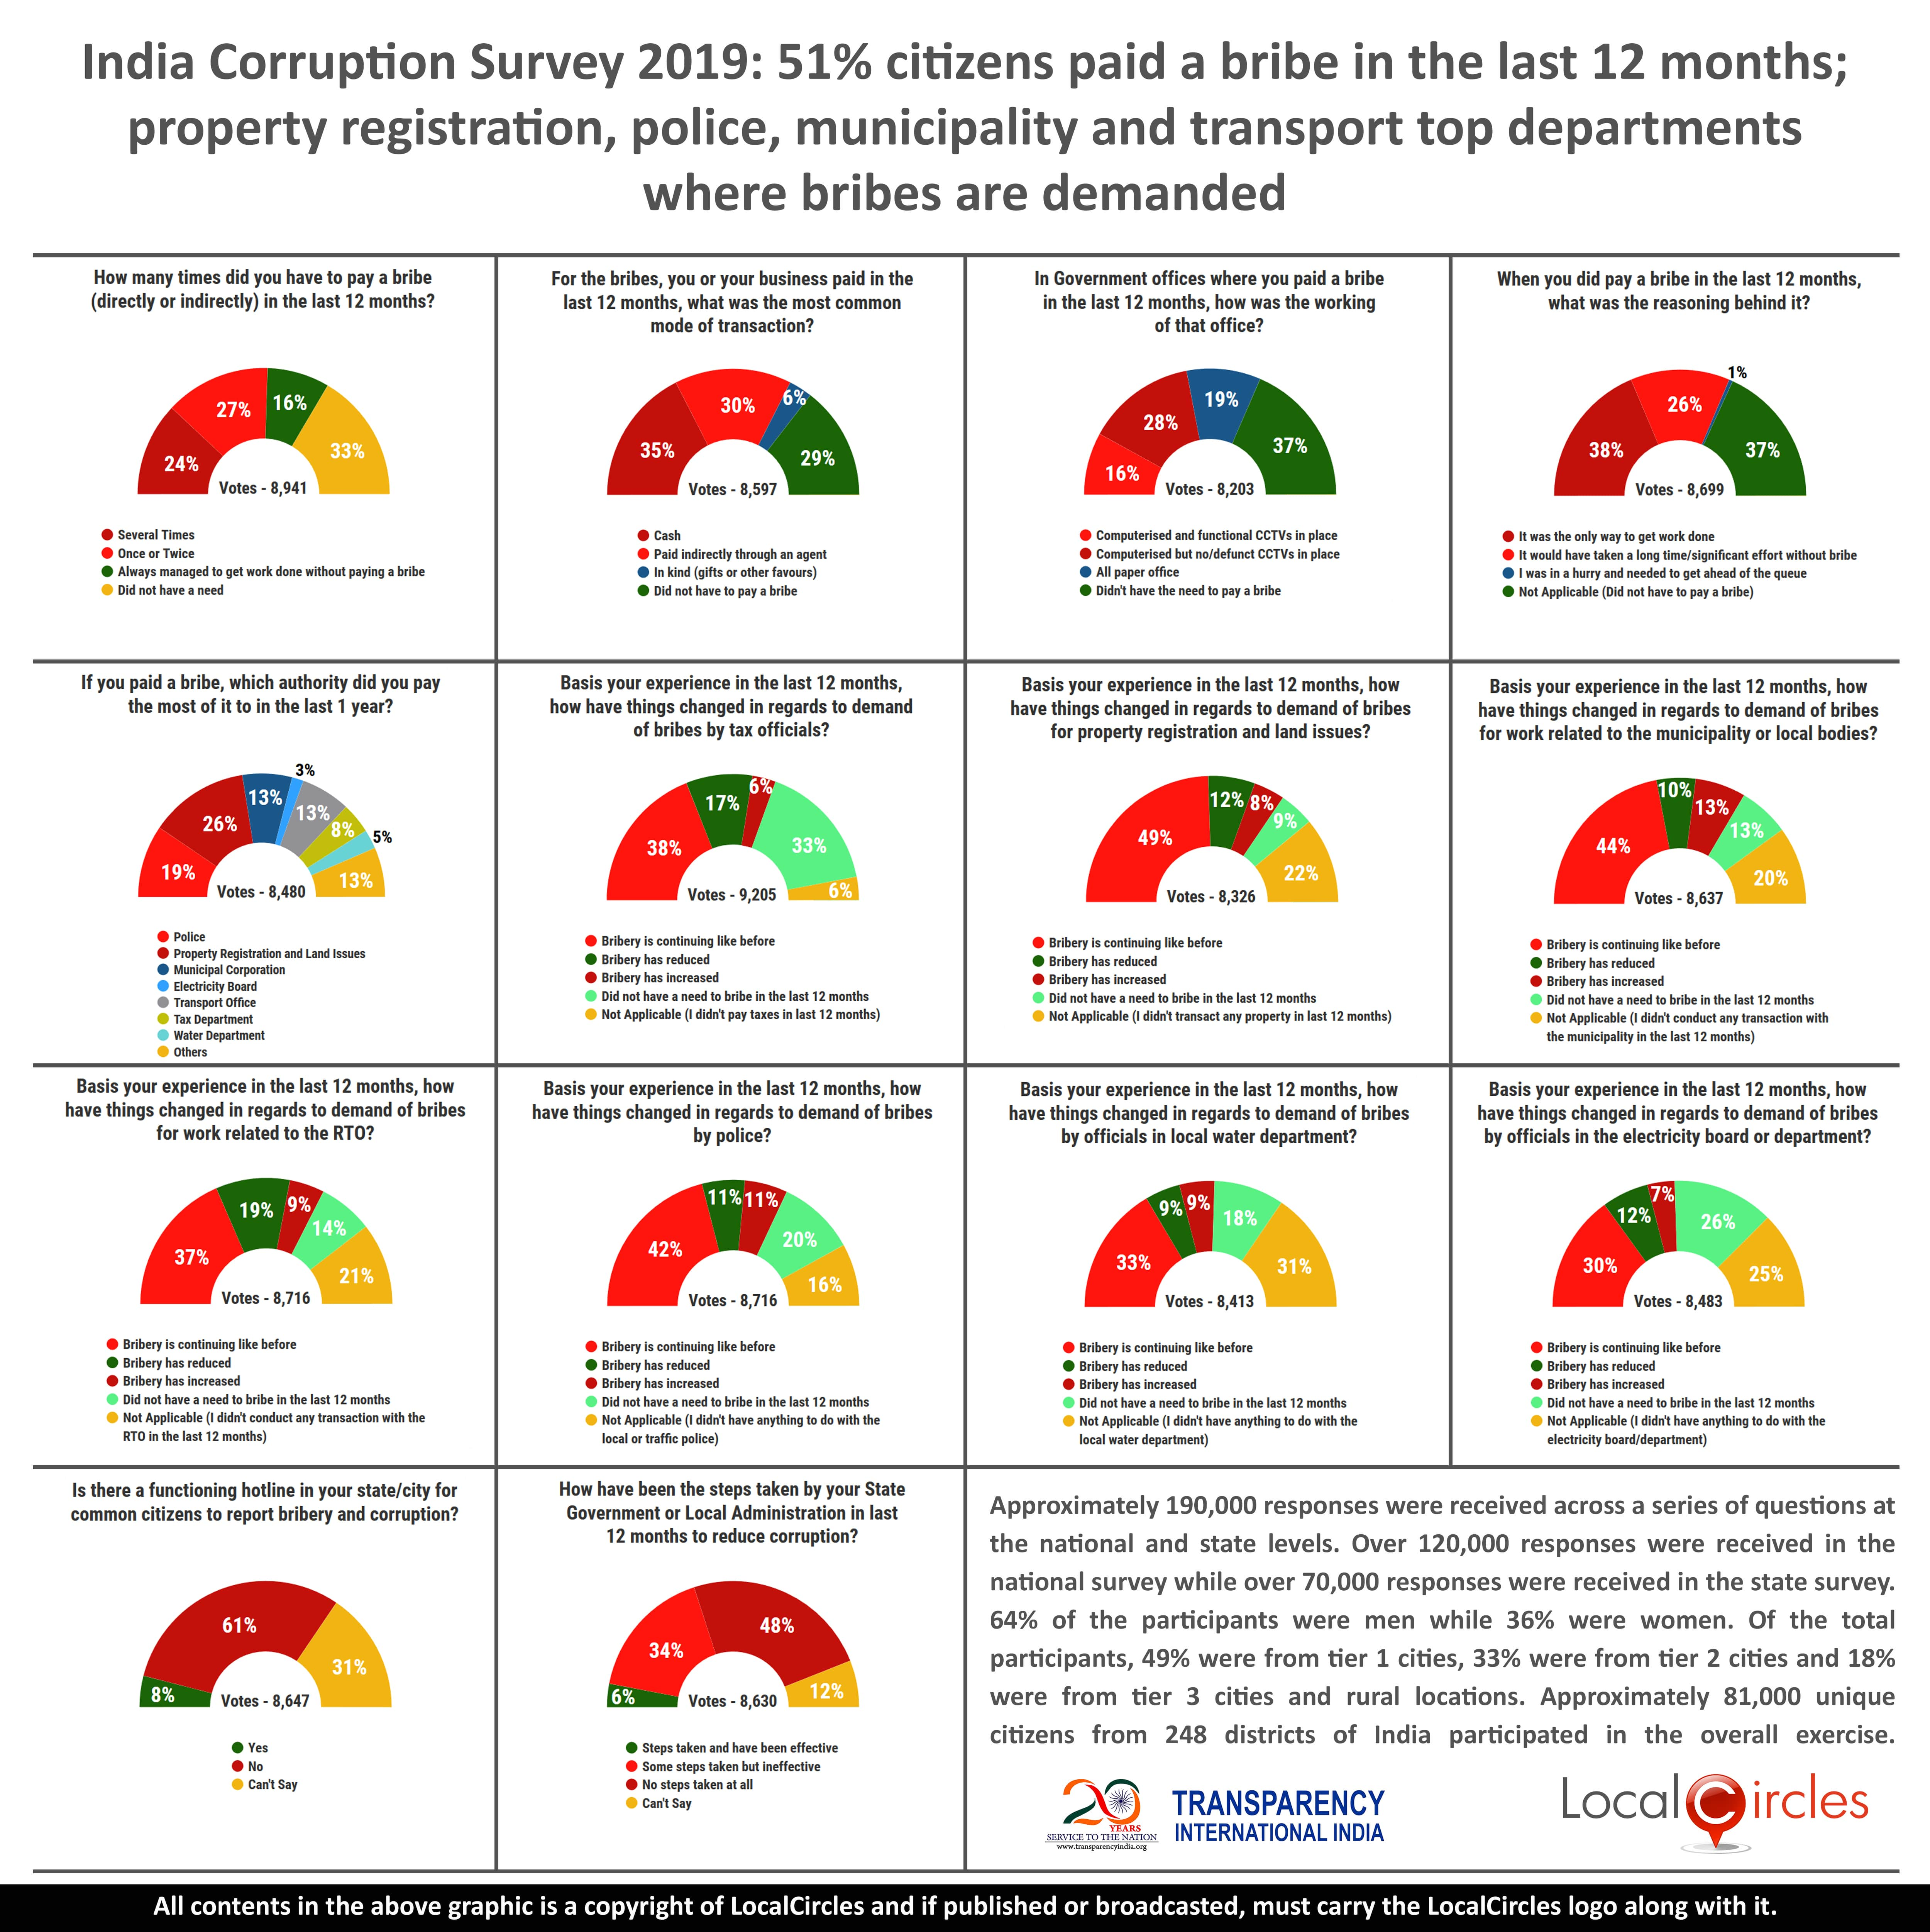 India Corruption Survey 2019: 51% citizens paid a bribe in the last 12 months; property registration, police, municipality and transport top departments where bribes are demanded